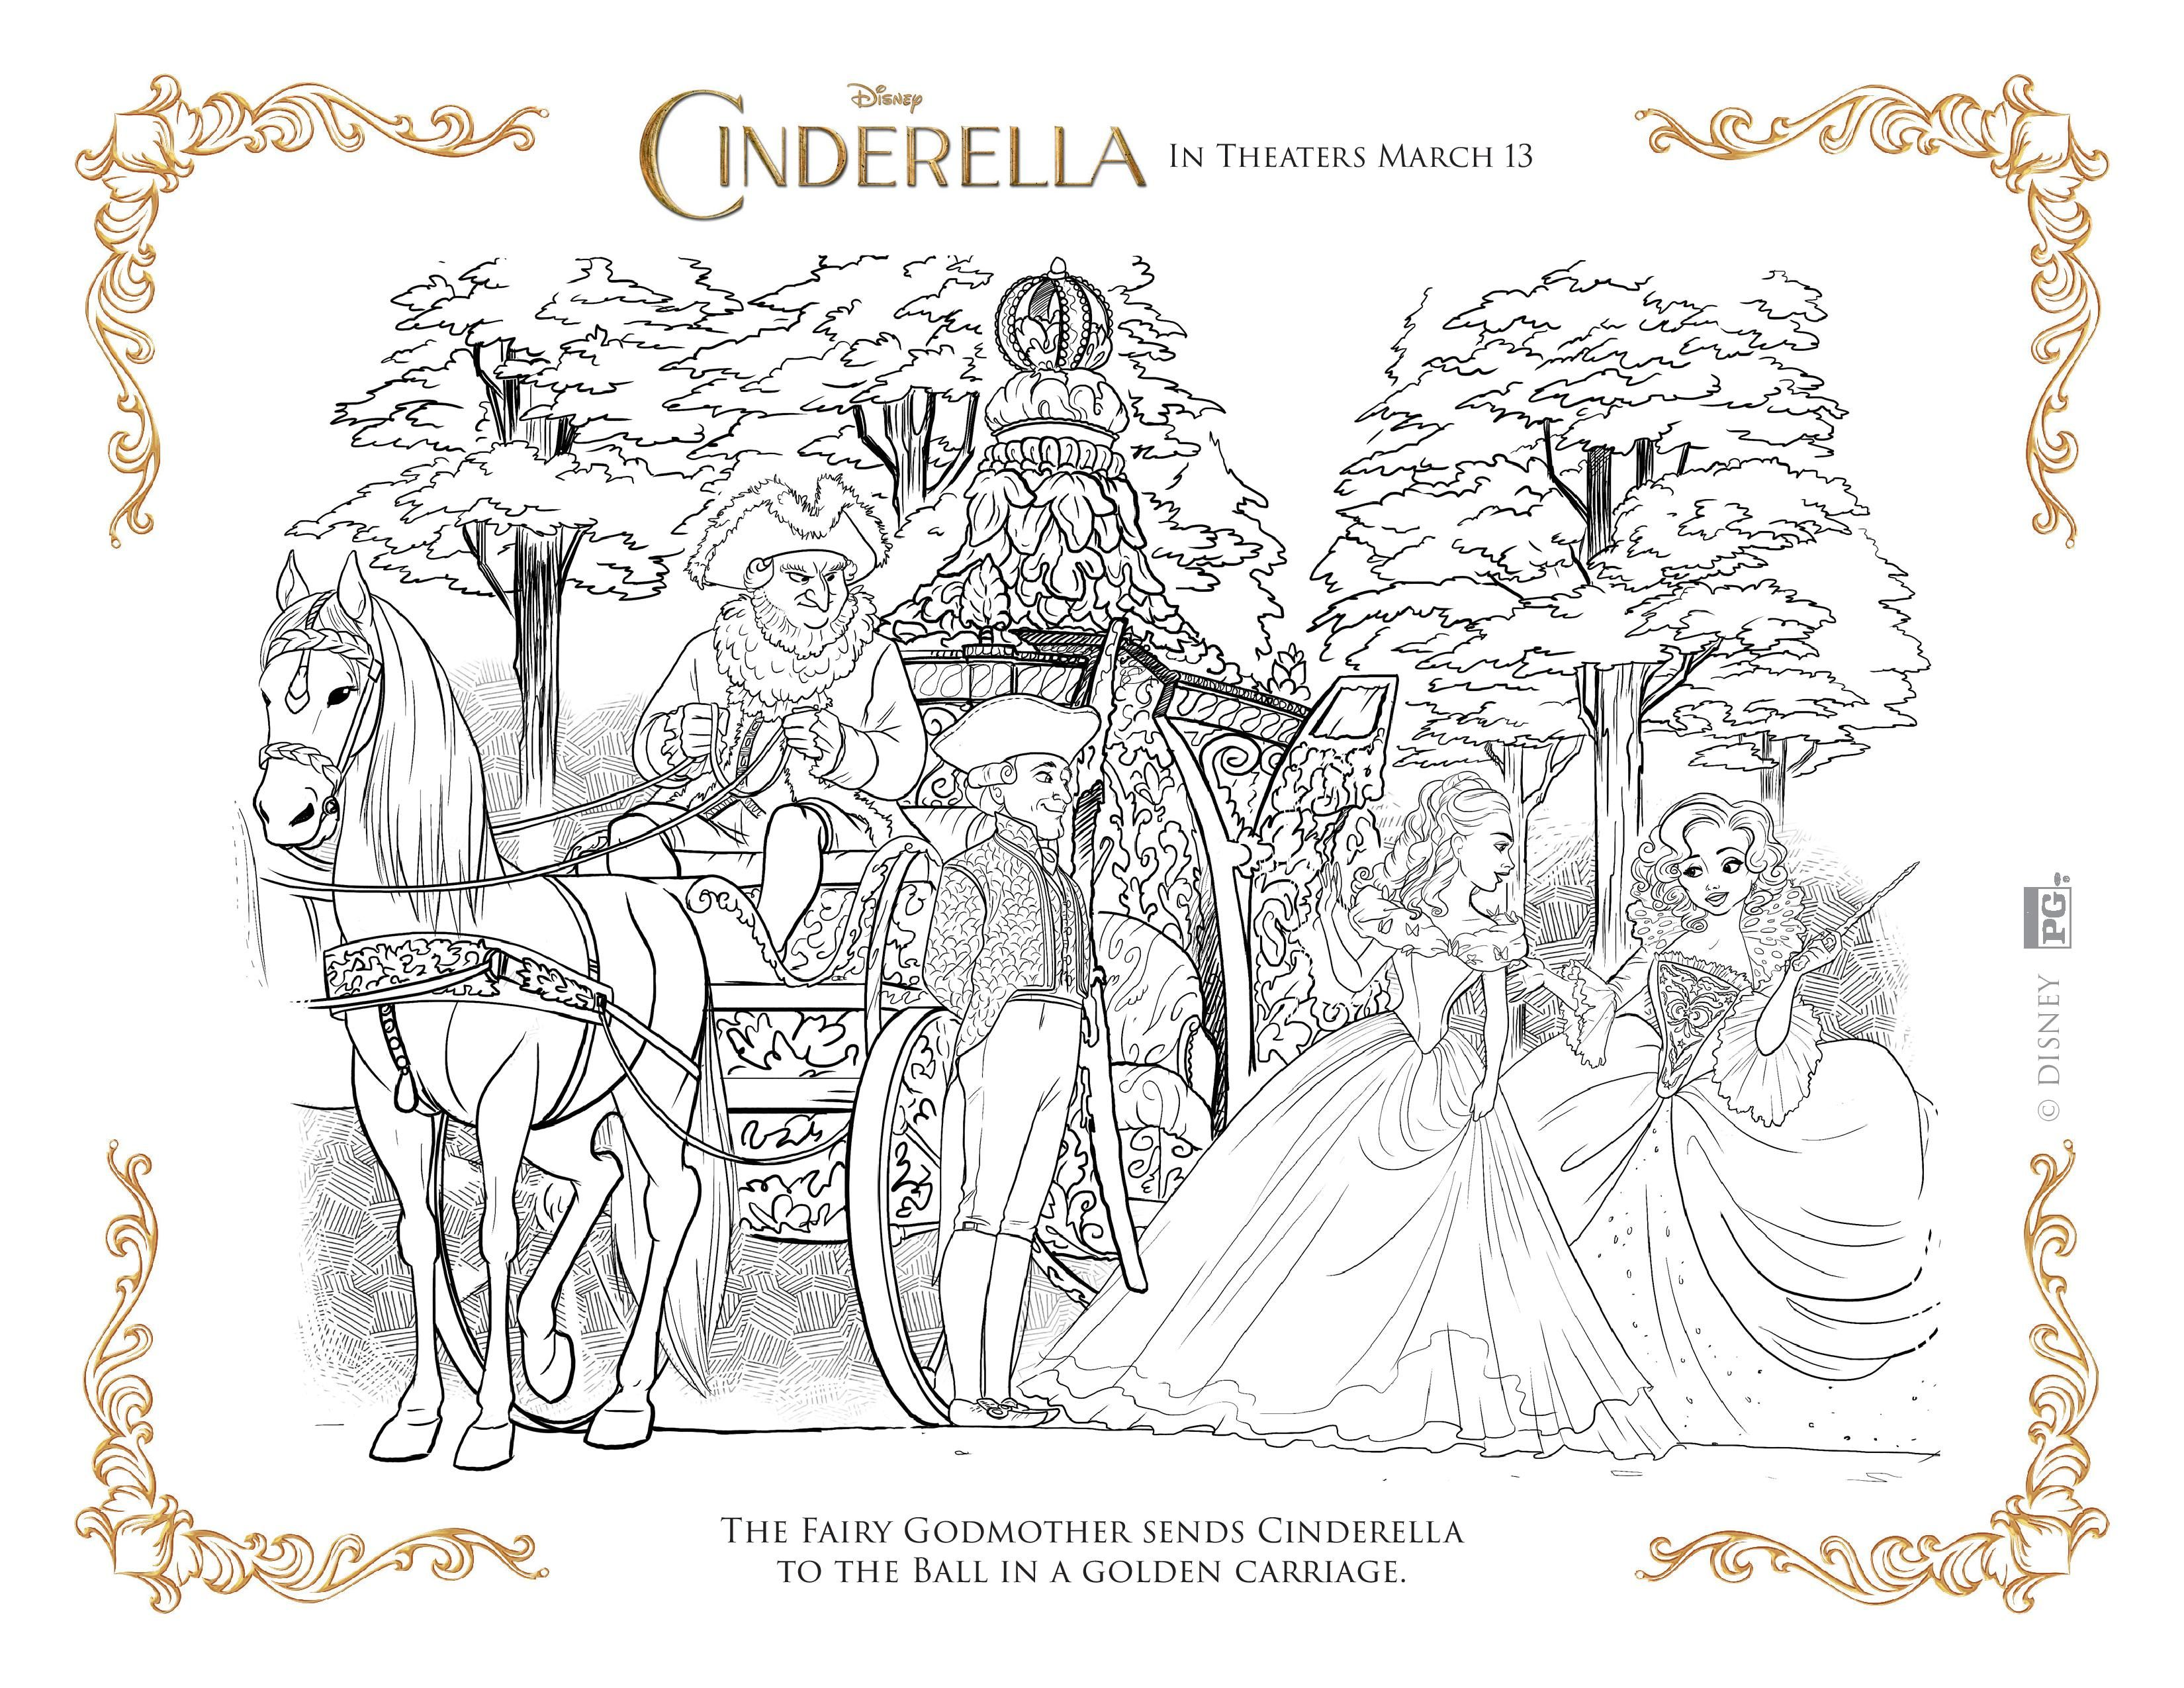 New Disney S Cinderella Coloring Pages And Activity Sheets Cinderella Coloring Pages Cartoon Coloring Pages Disney Coloring Pages